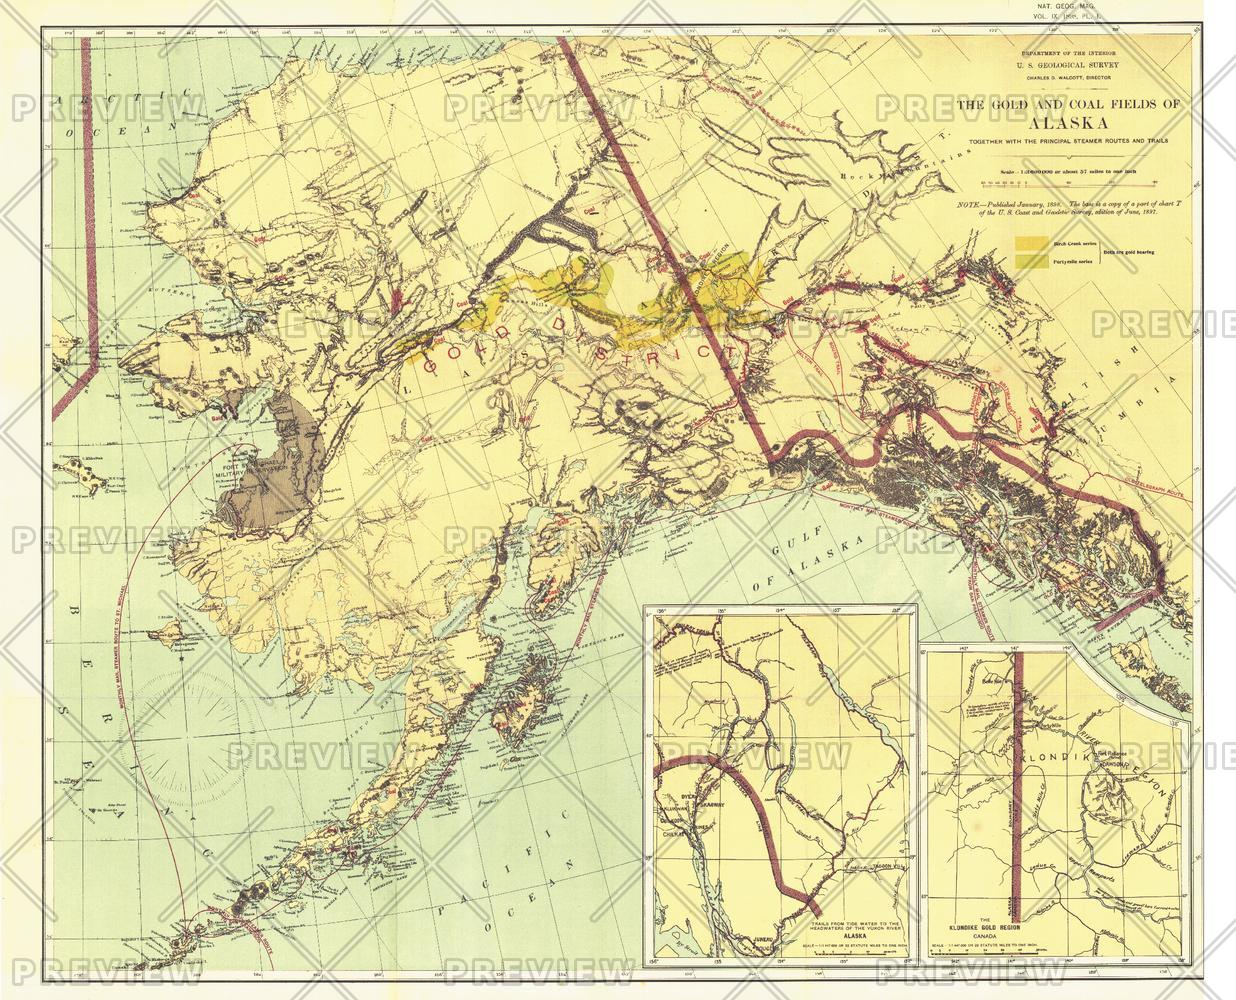 Gold and Coal Fields of Alaska - Published 1898